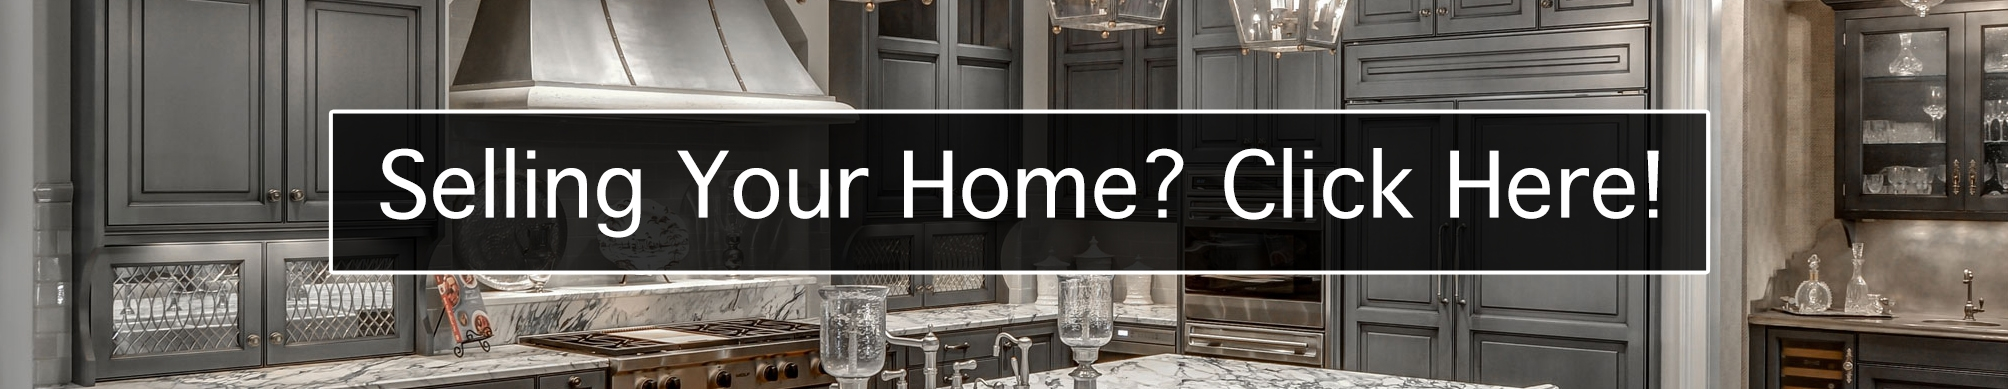 Contact BrownDnaiel to Sell Your Home